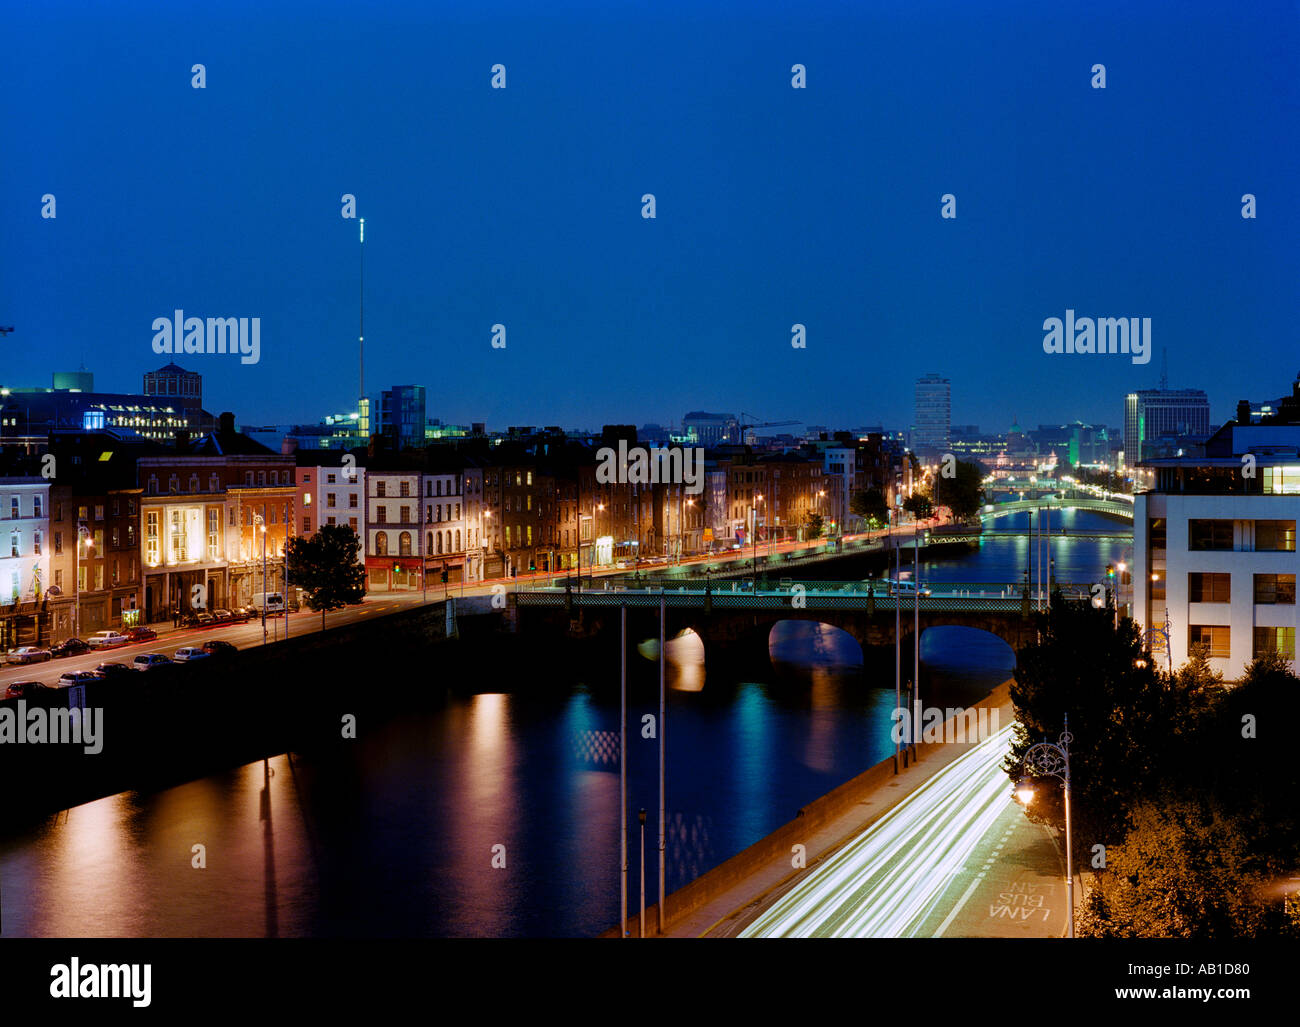 An evening scene of the river Liffey in Dublin, Ireland,  including the Spire of Dublin - Stock Image